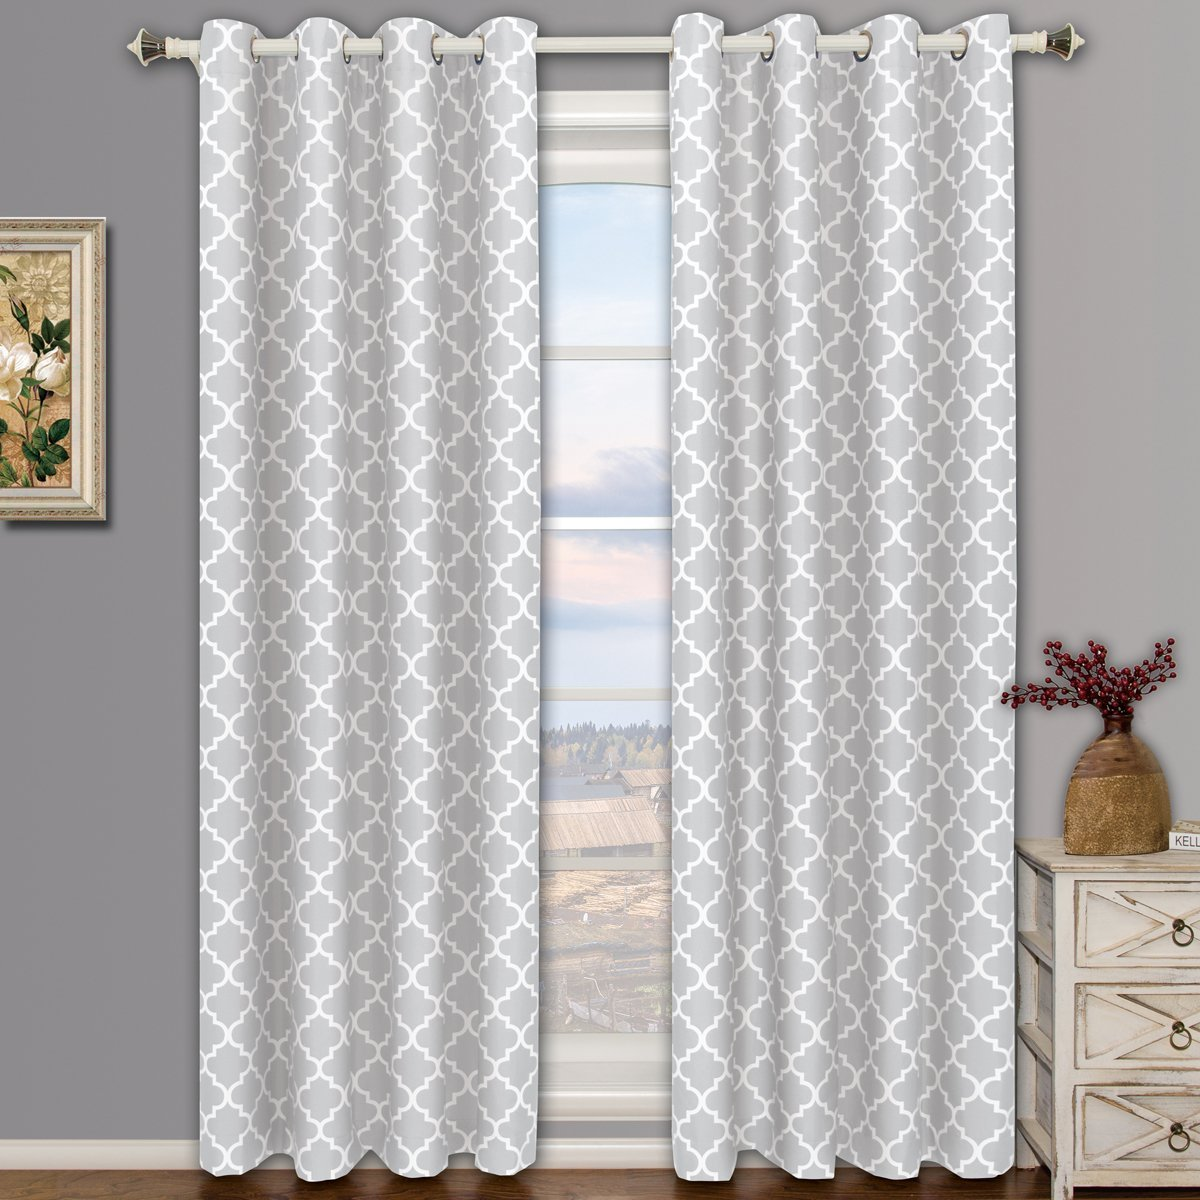 your darkening trellis to thermalogictm decor home amazon curtain grommet apply sheers and thermalogic tempting insulated tm curtains blackout room with whitetempting as top pleasing hd